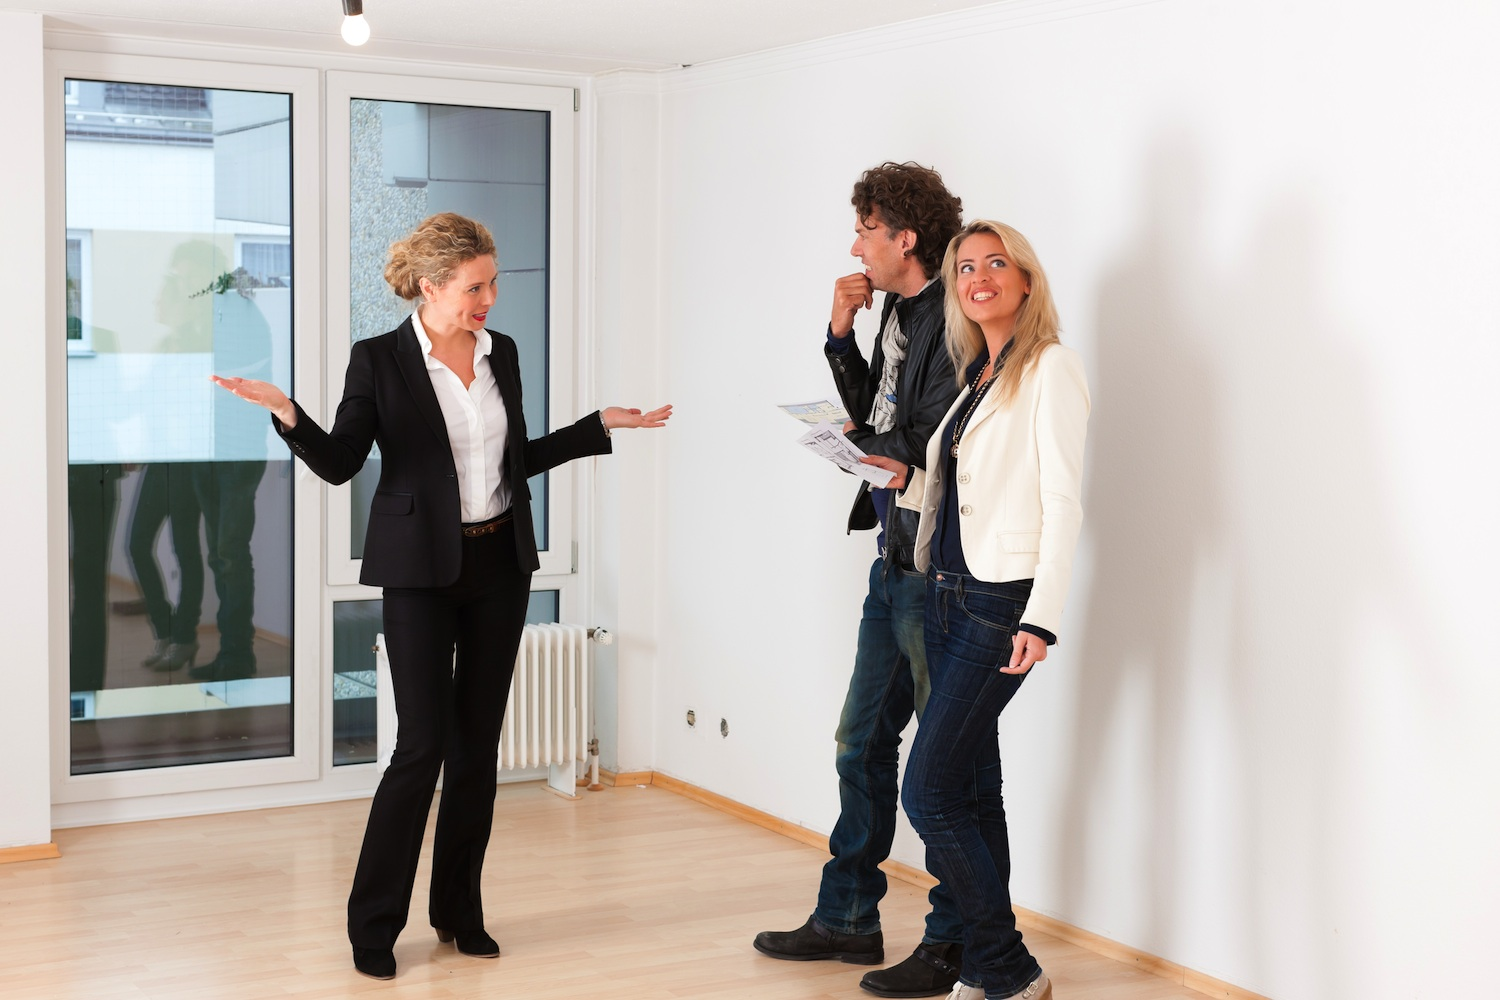 Showing a Property to Prospective Buyers